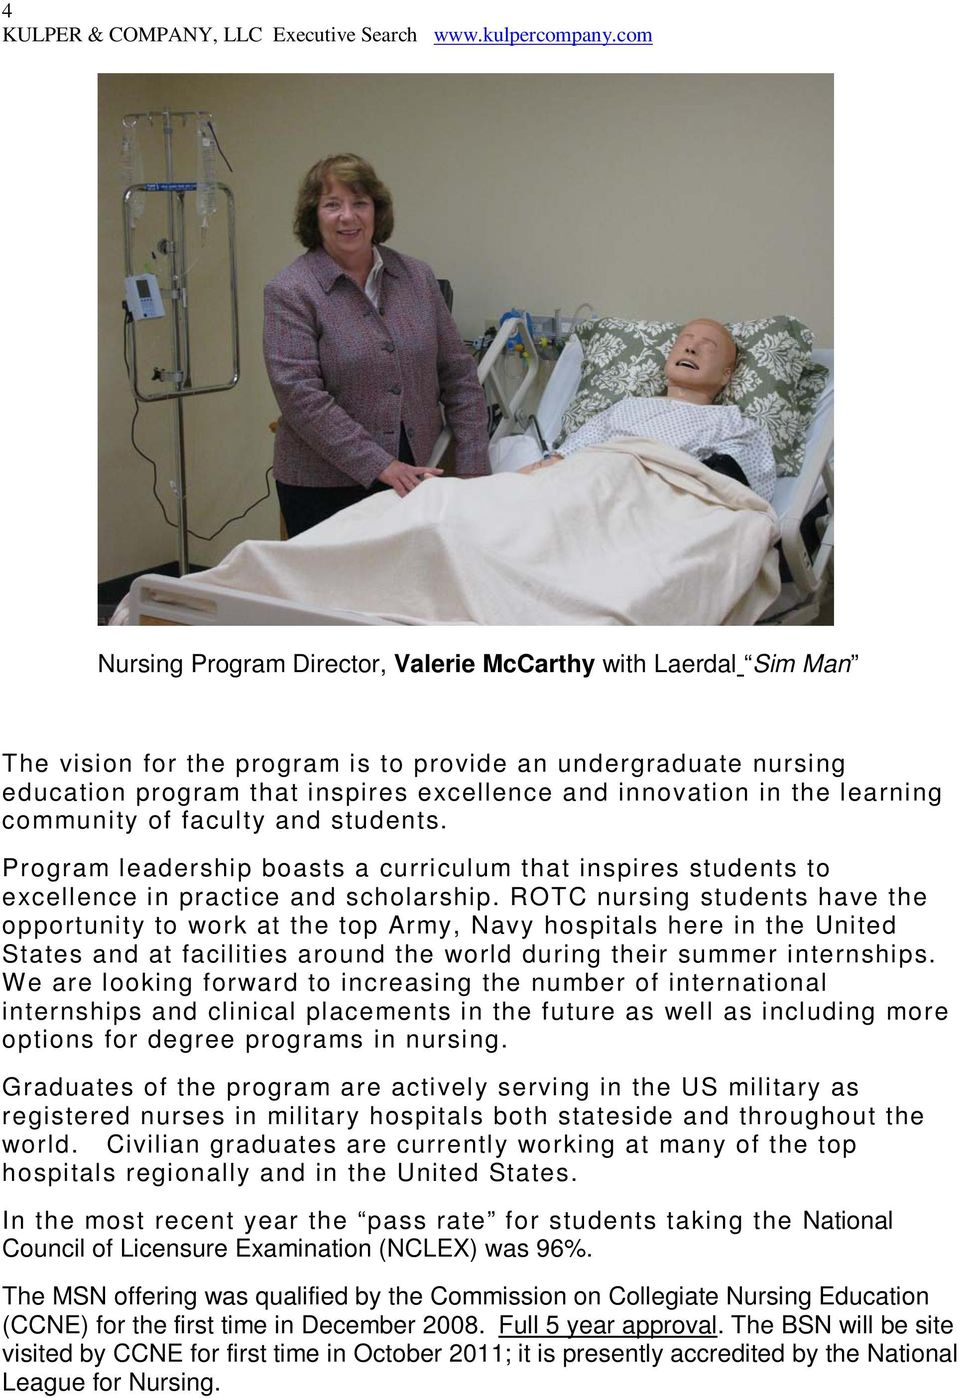 ROTC nursing students have the opportunity to work at the top Army, Navy hospitals here in the United States and at facilities around the world during their summer internships.